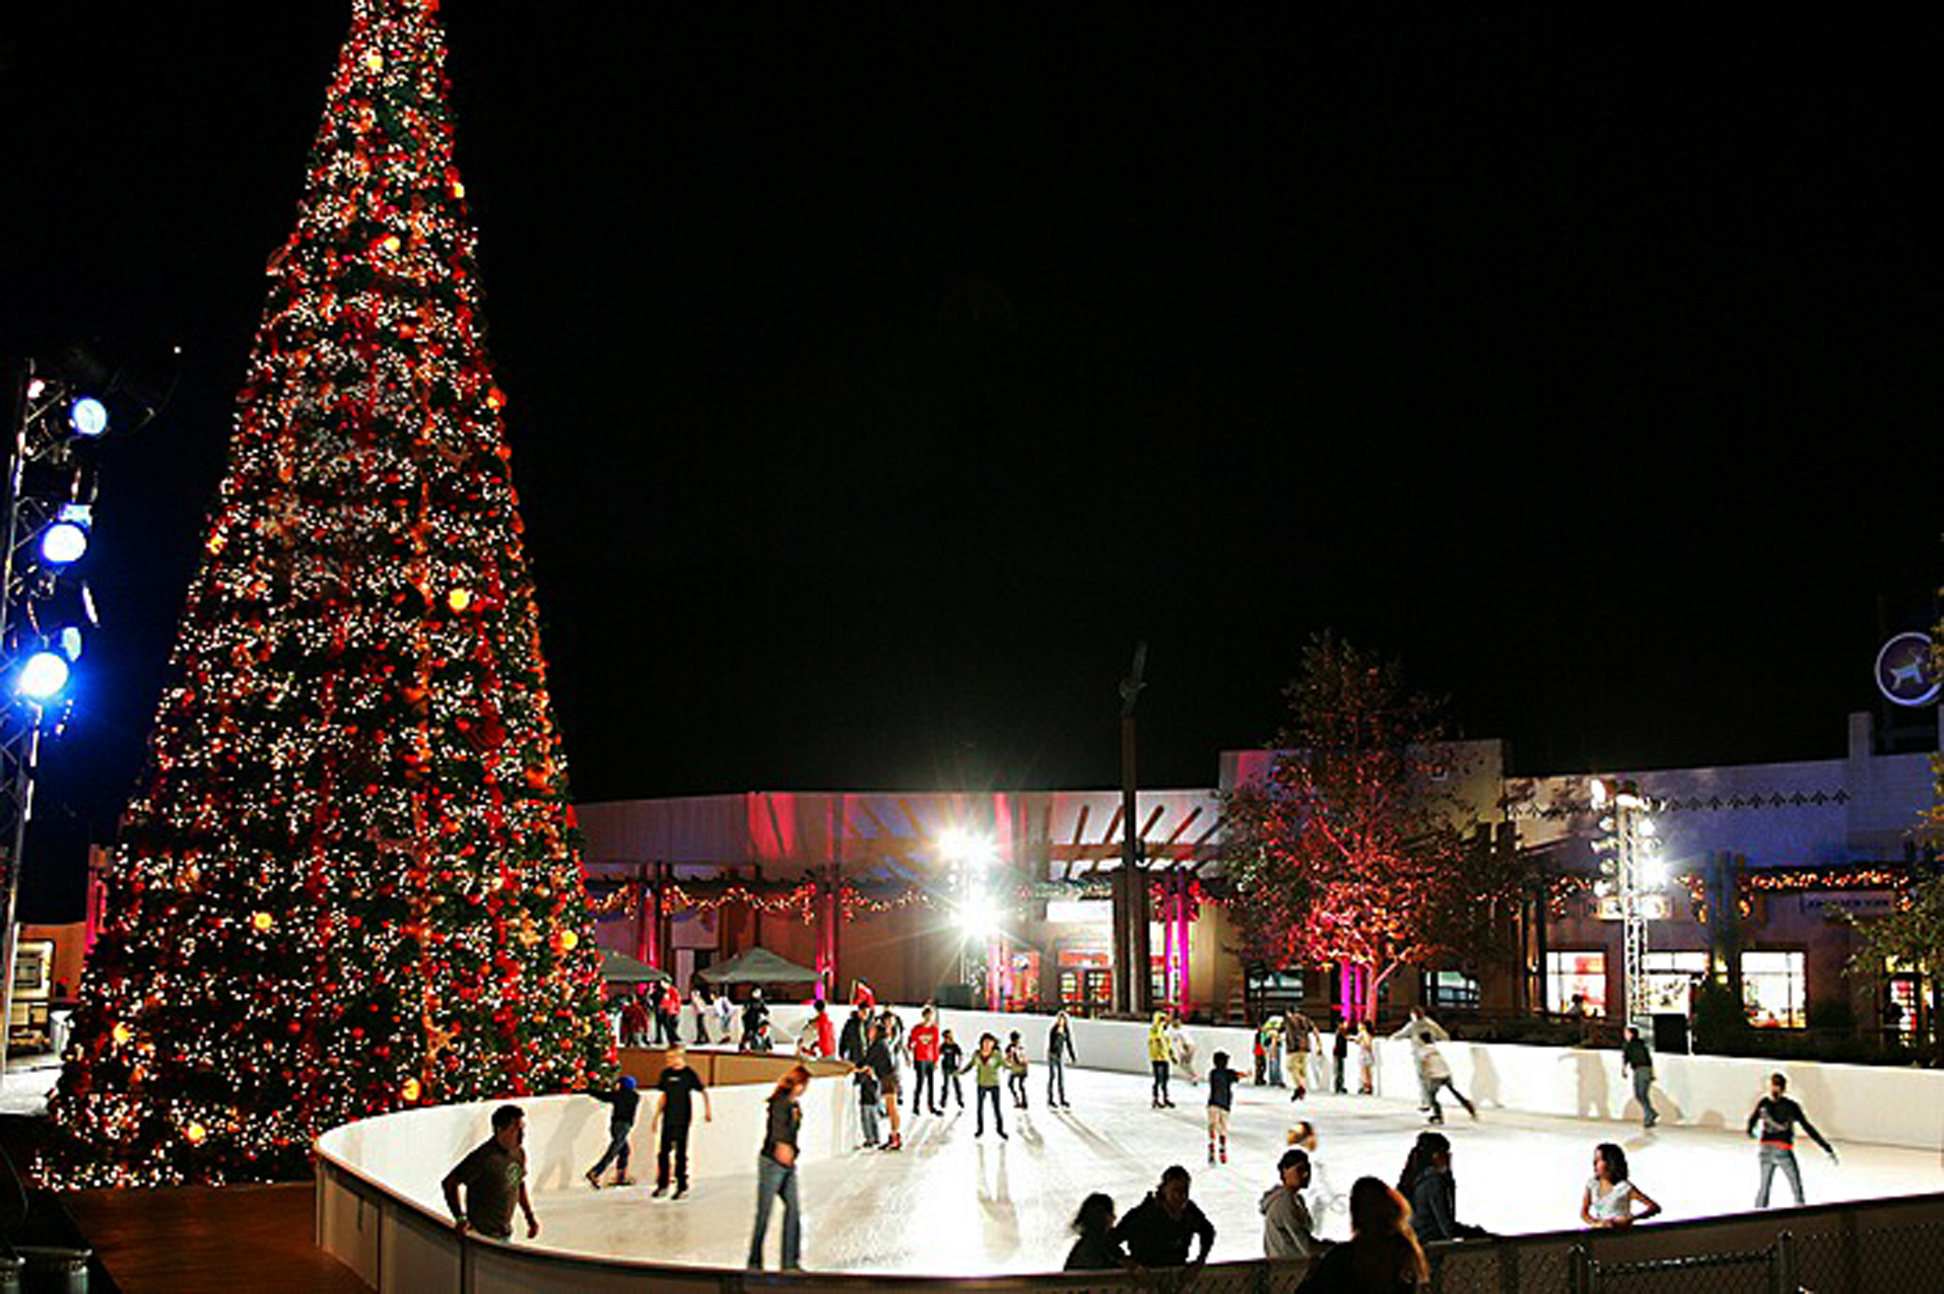 Viejas ice skating rink